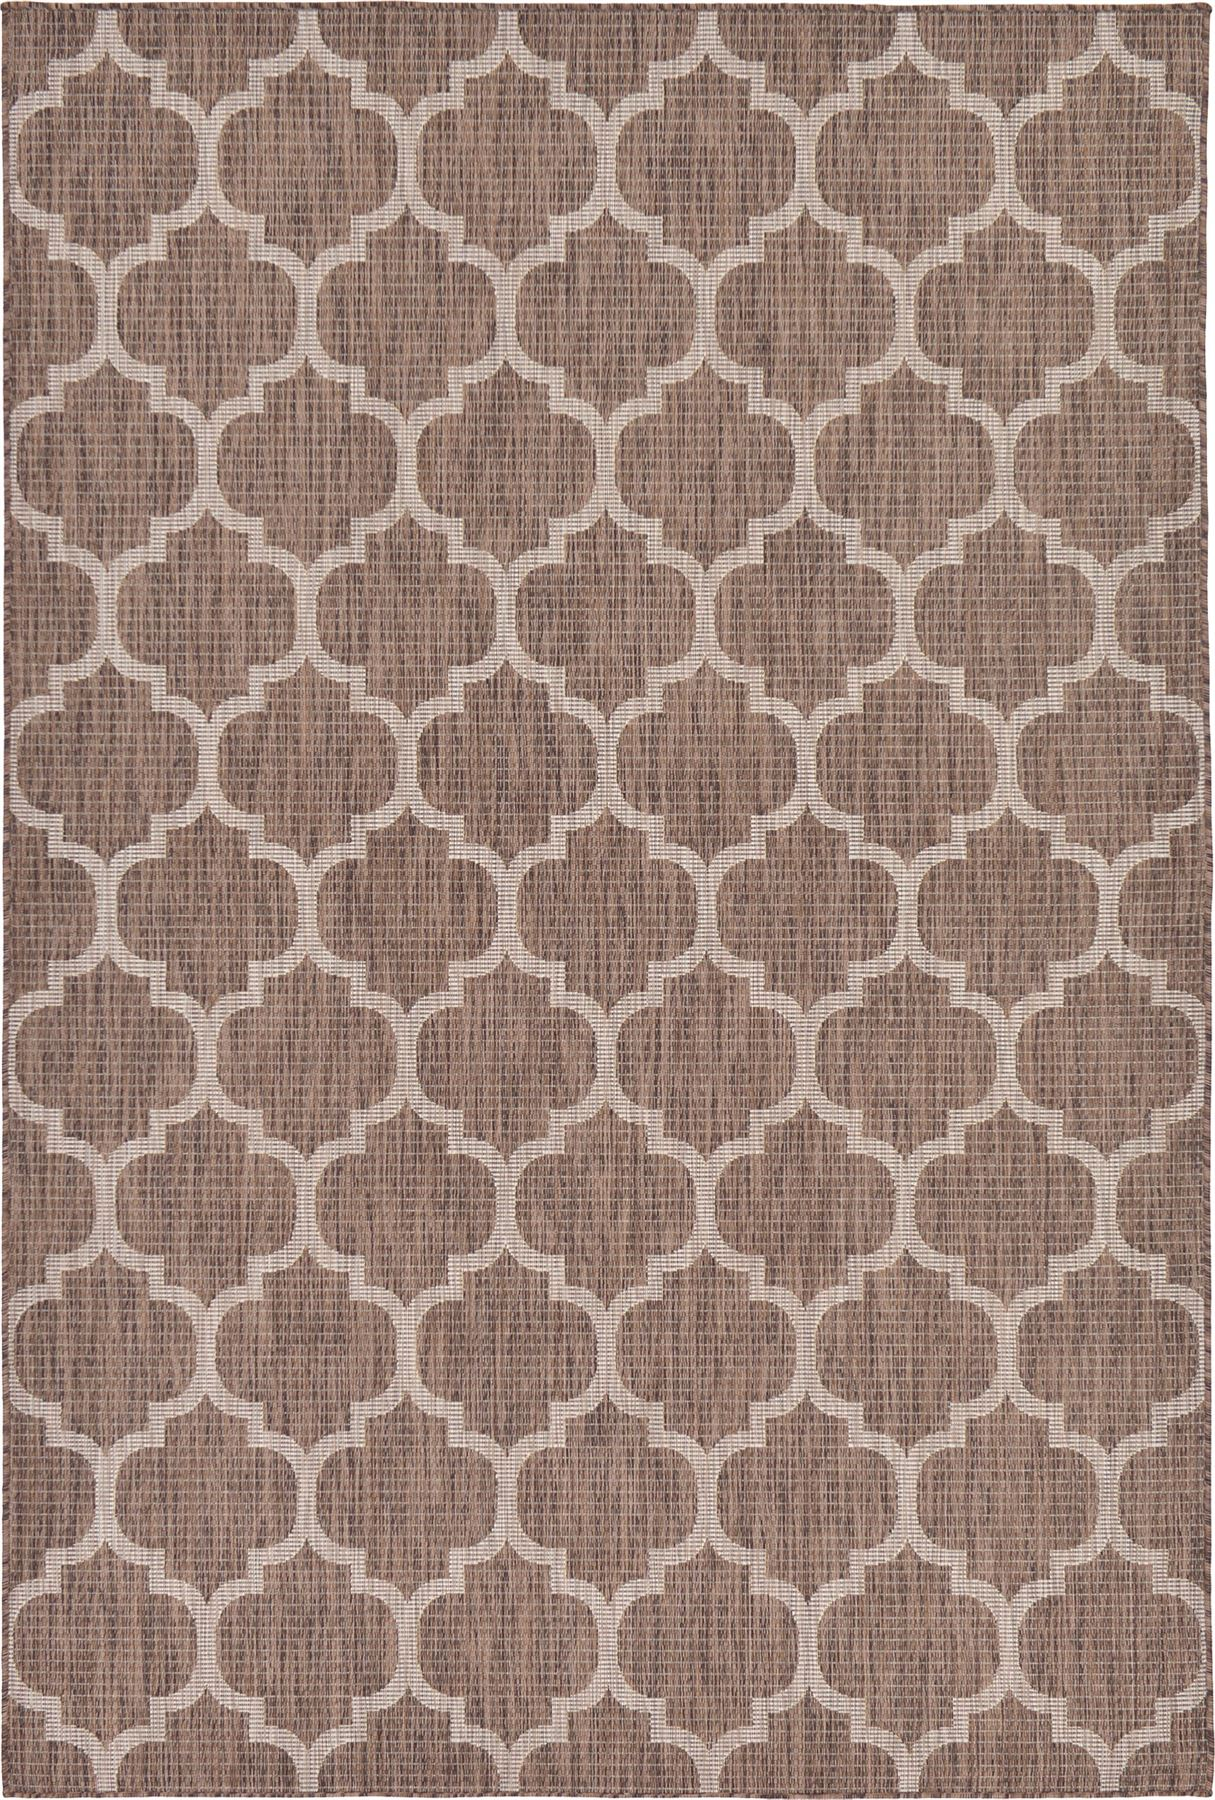 Well-liked Modern Geometric Contemporary Moroccan Style Carpet Large Area Rug  UE96